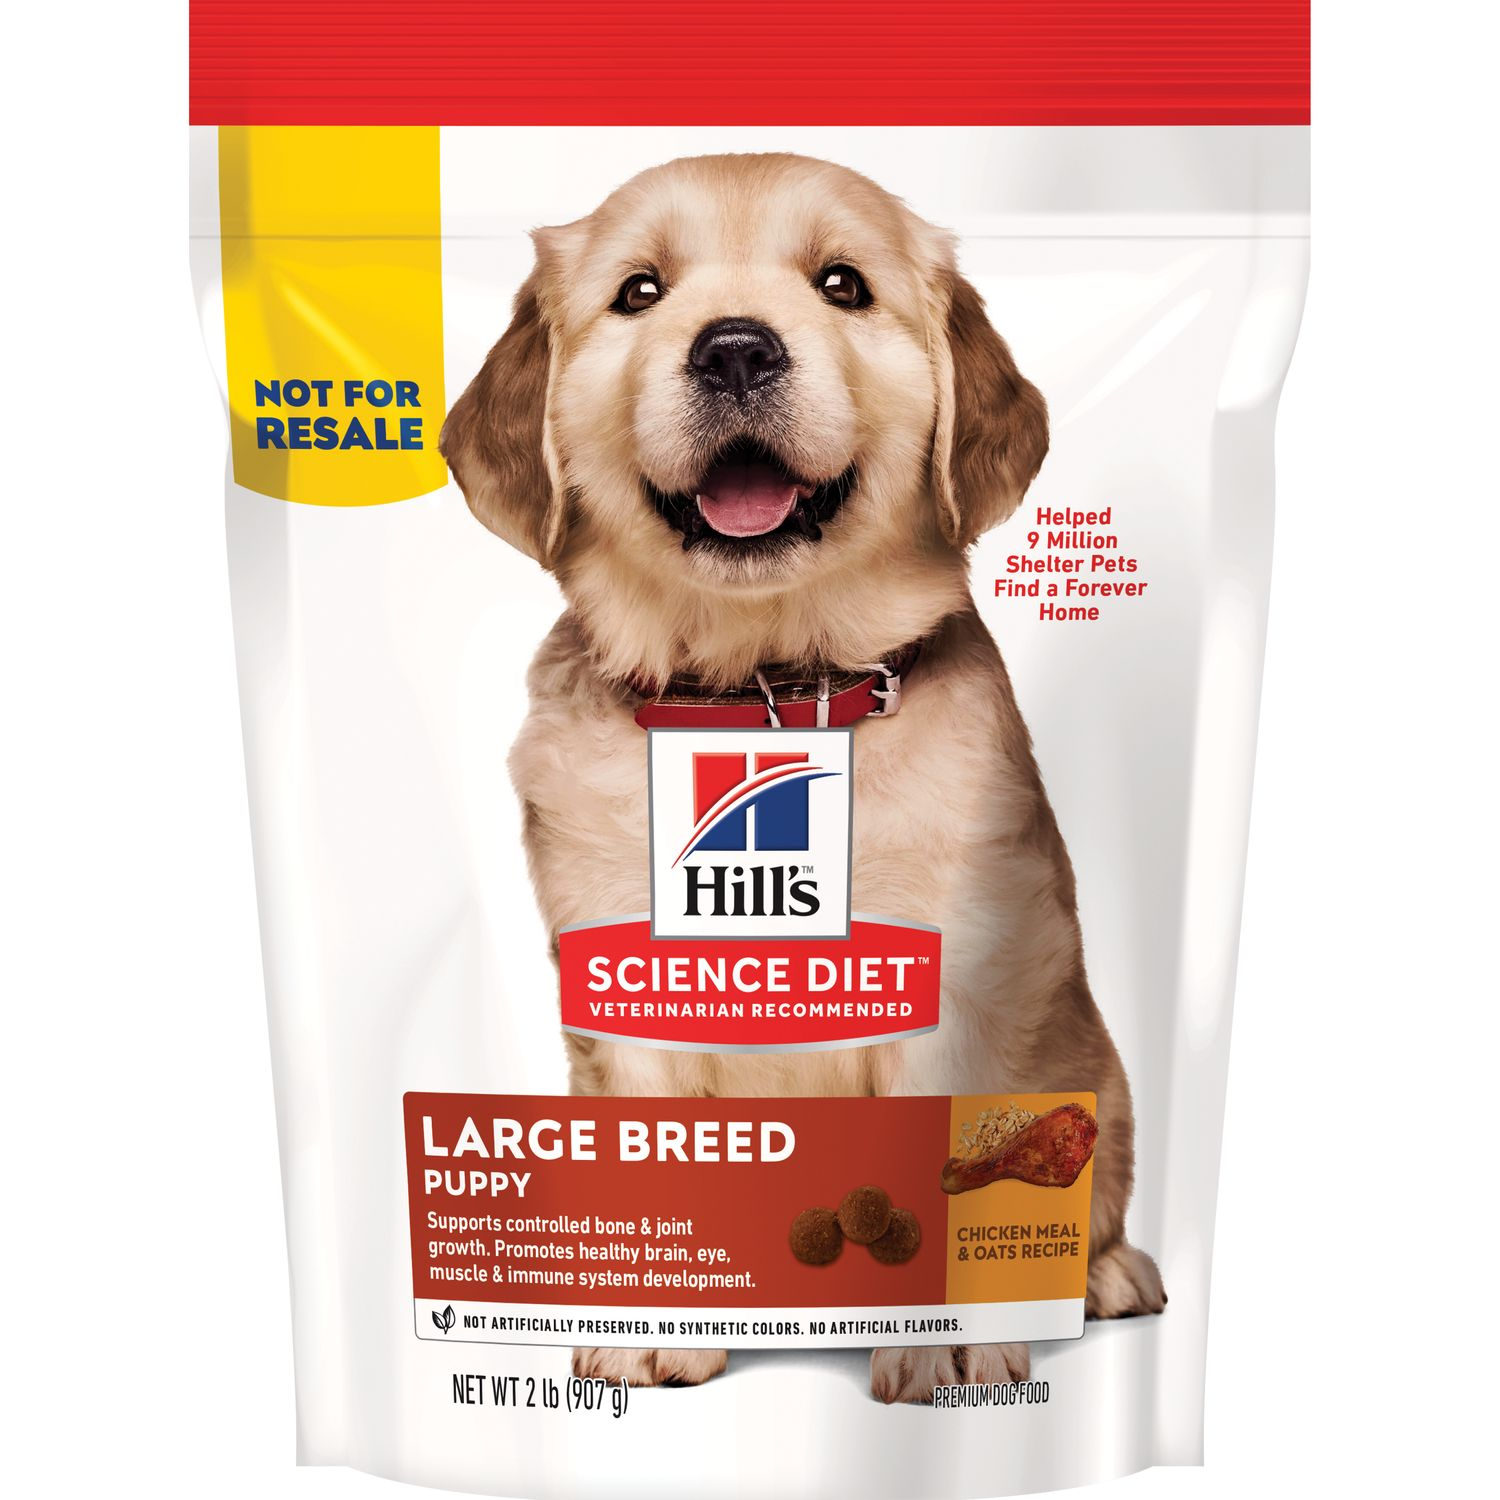 Hill's Science Diet Puppy Large Breed